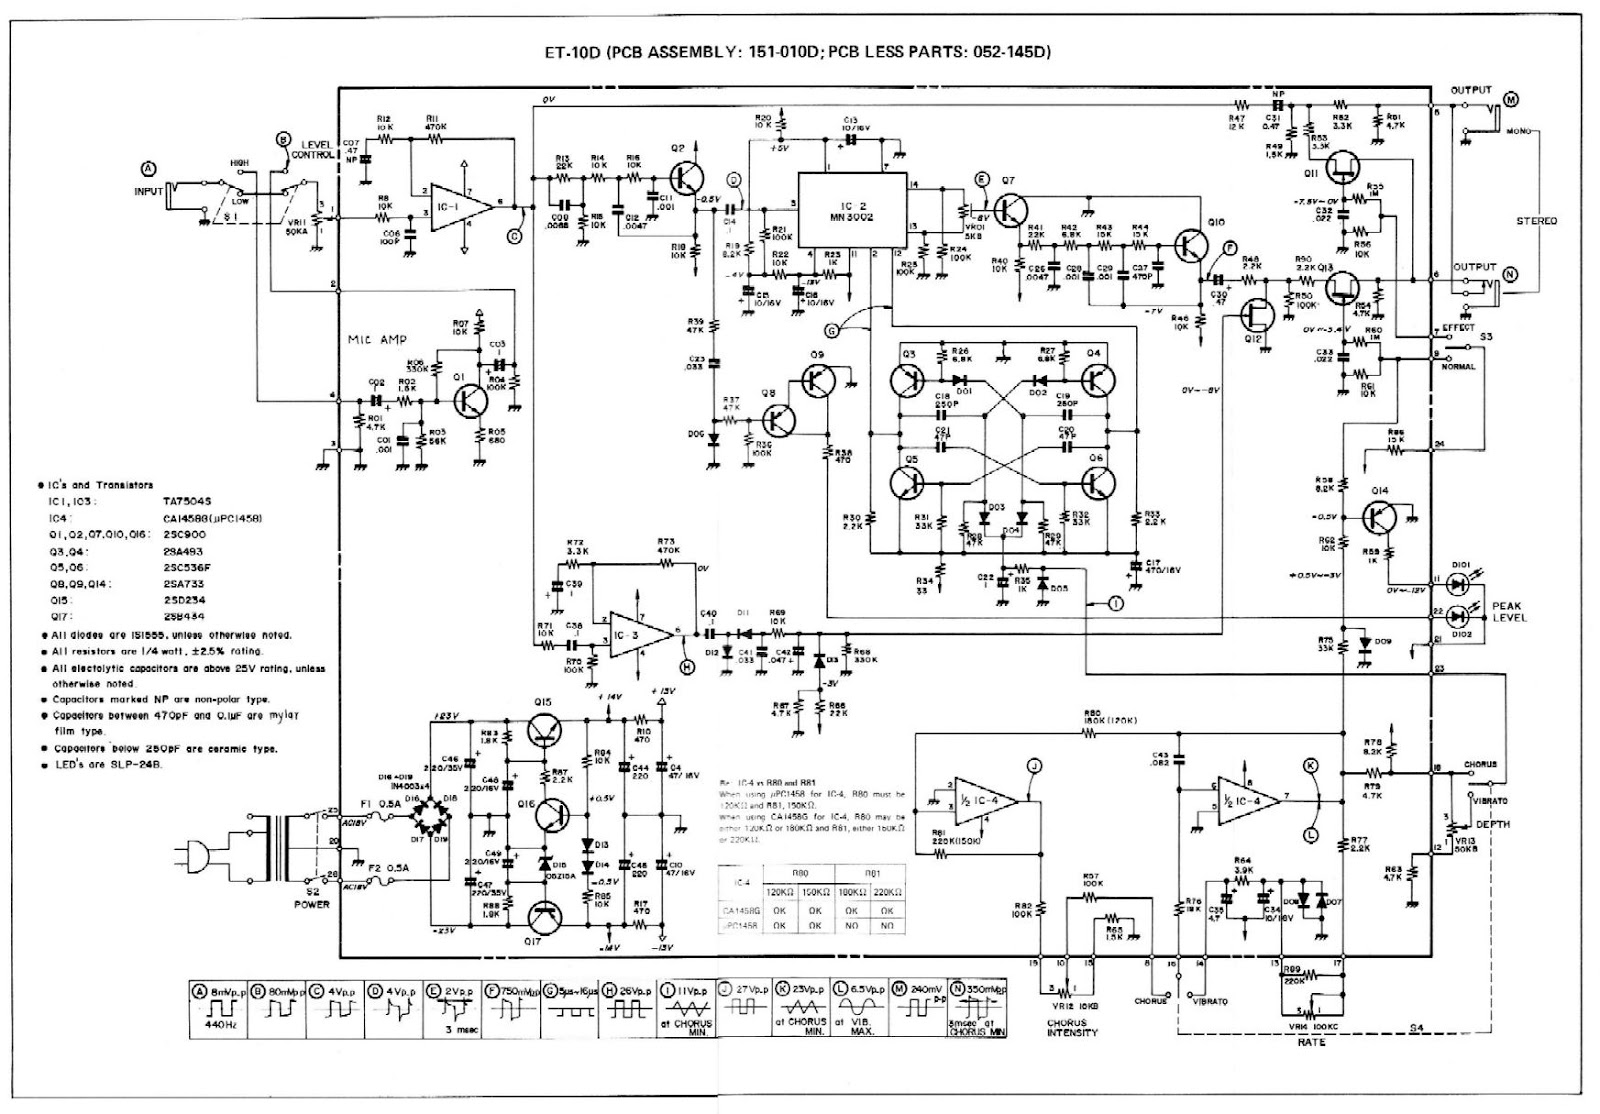 Dumble Amp Schematics, Dumble, Free Engine Image For User